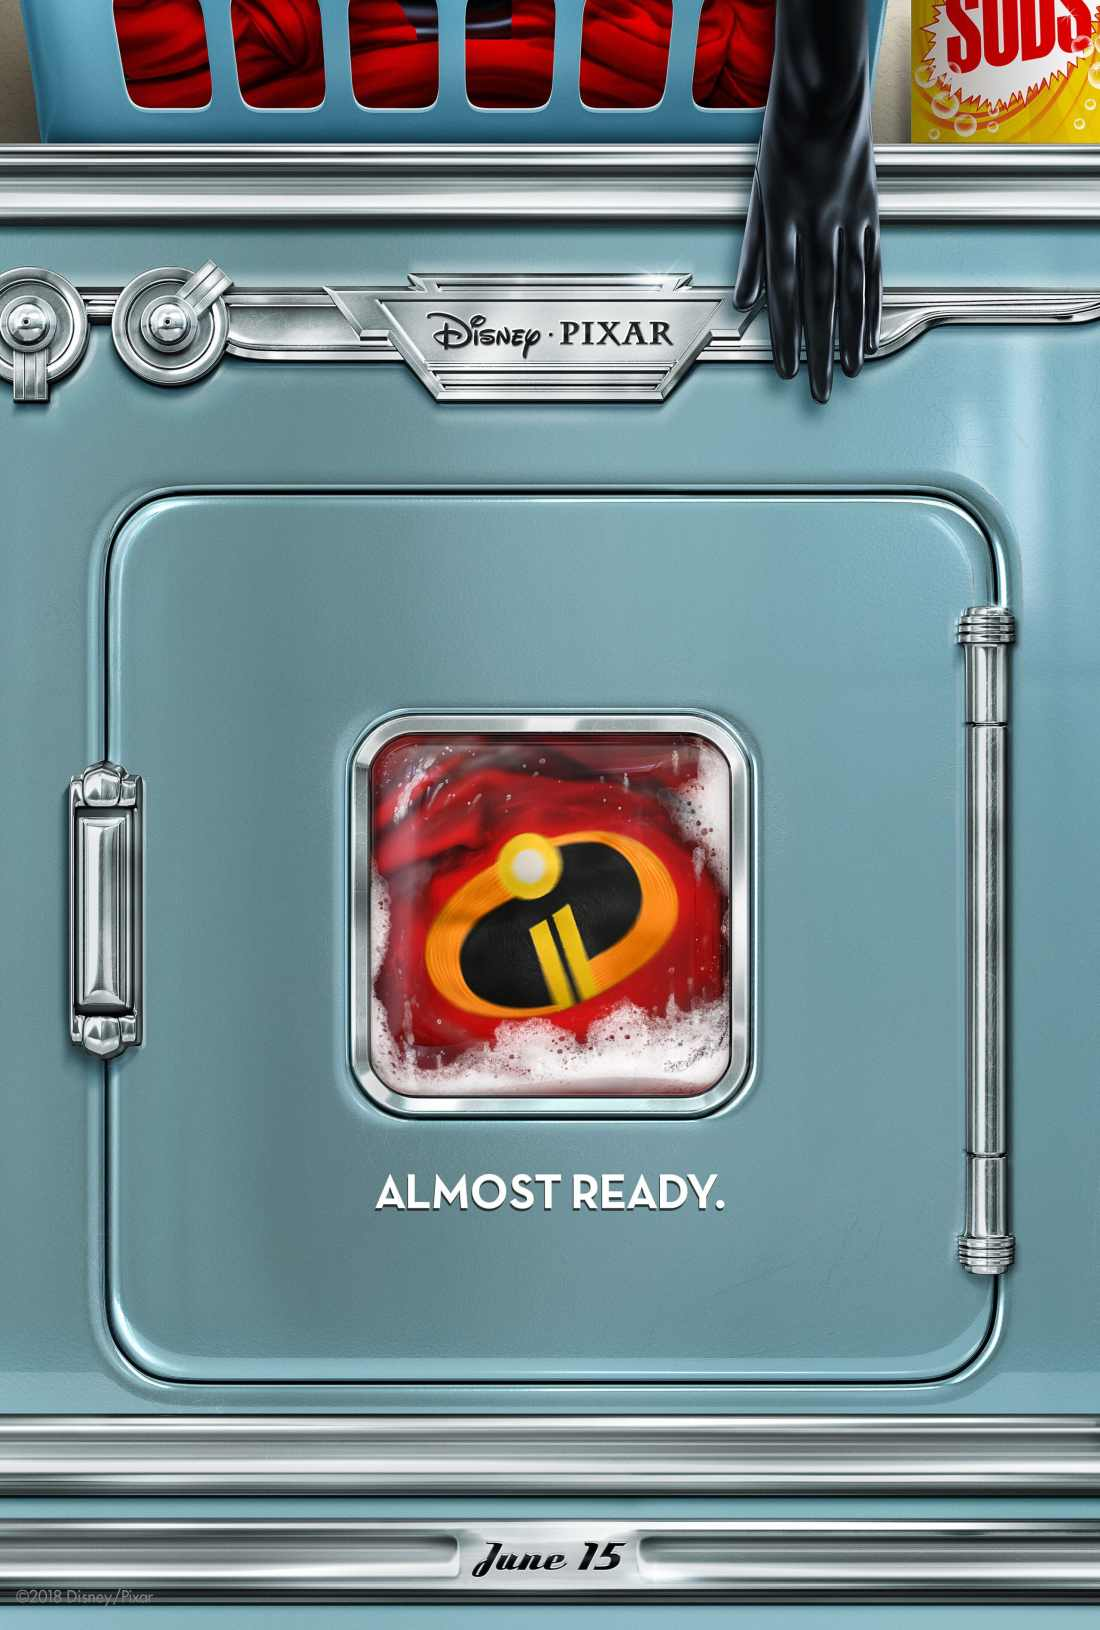 "Disney Pixar's ""Incredibles 2"" opens in U.S. theaters on June 15, 2018. ©2017 Disney•Pixar. All Rights Reserved."